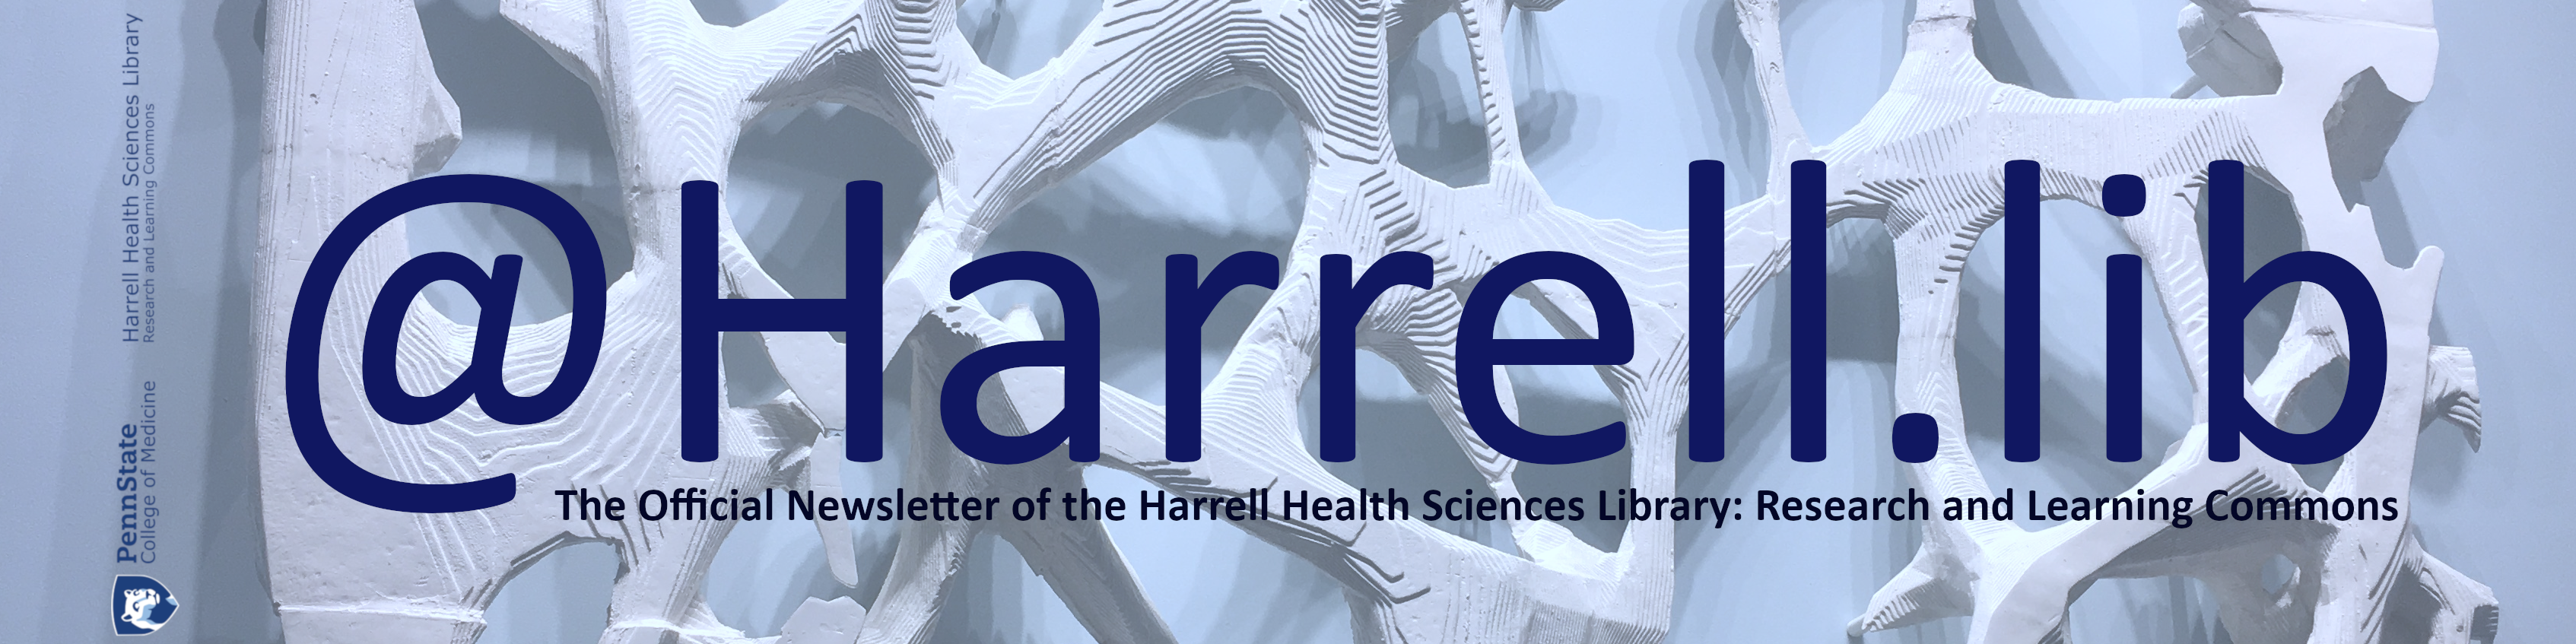 @HARRELL.LIB:  The official newsletter of the Harrell Health Sciences Library: Research and Learning Commons